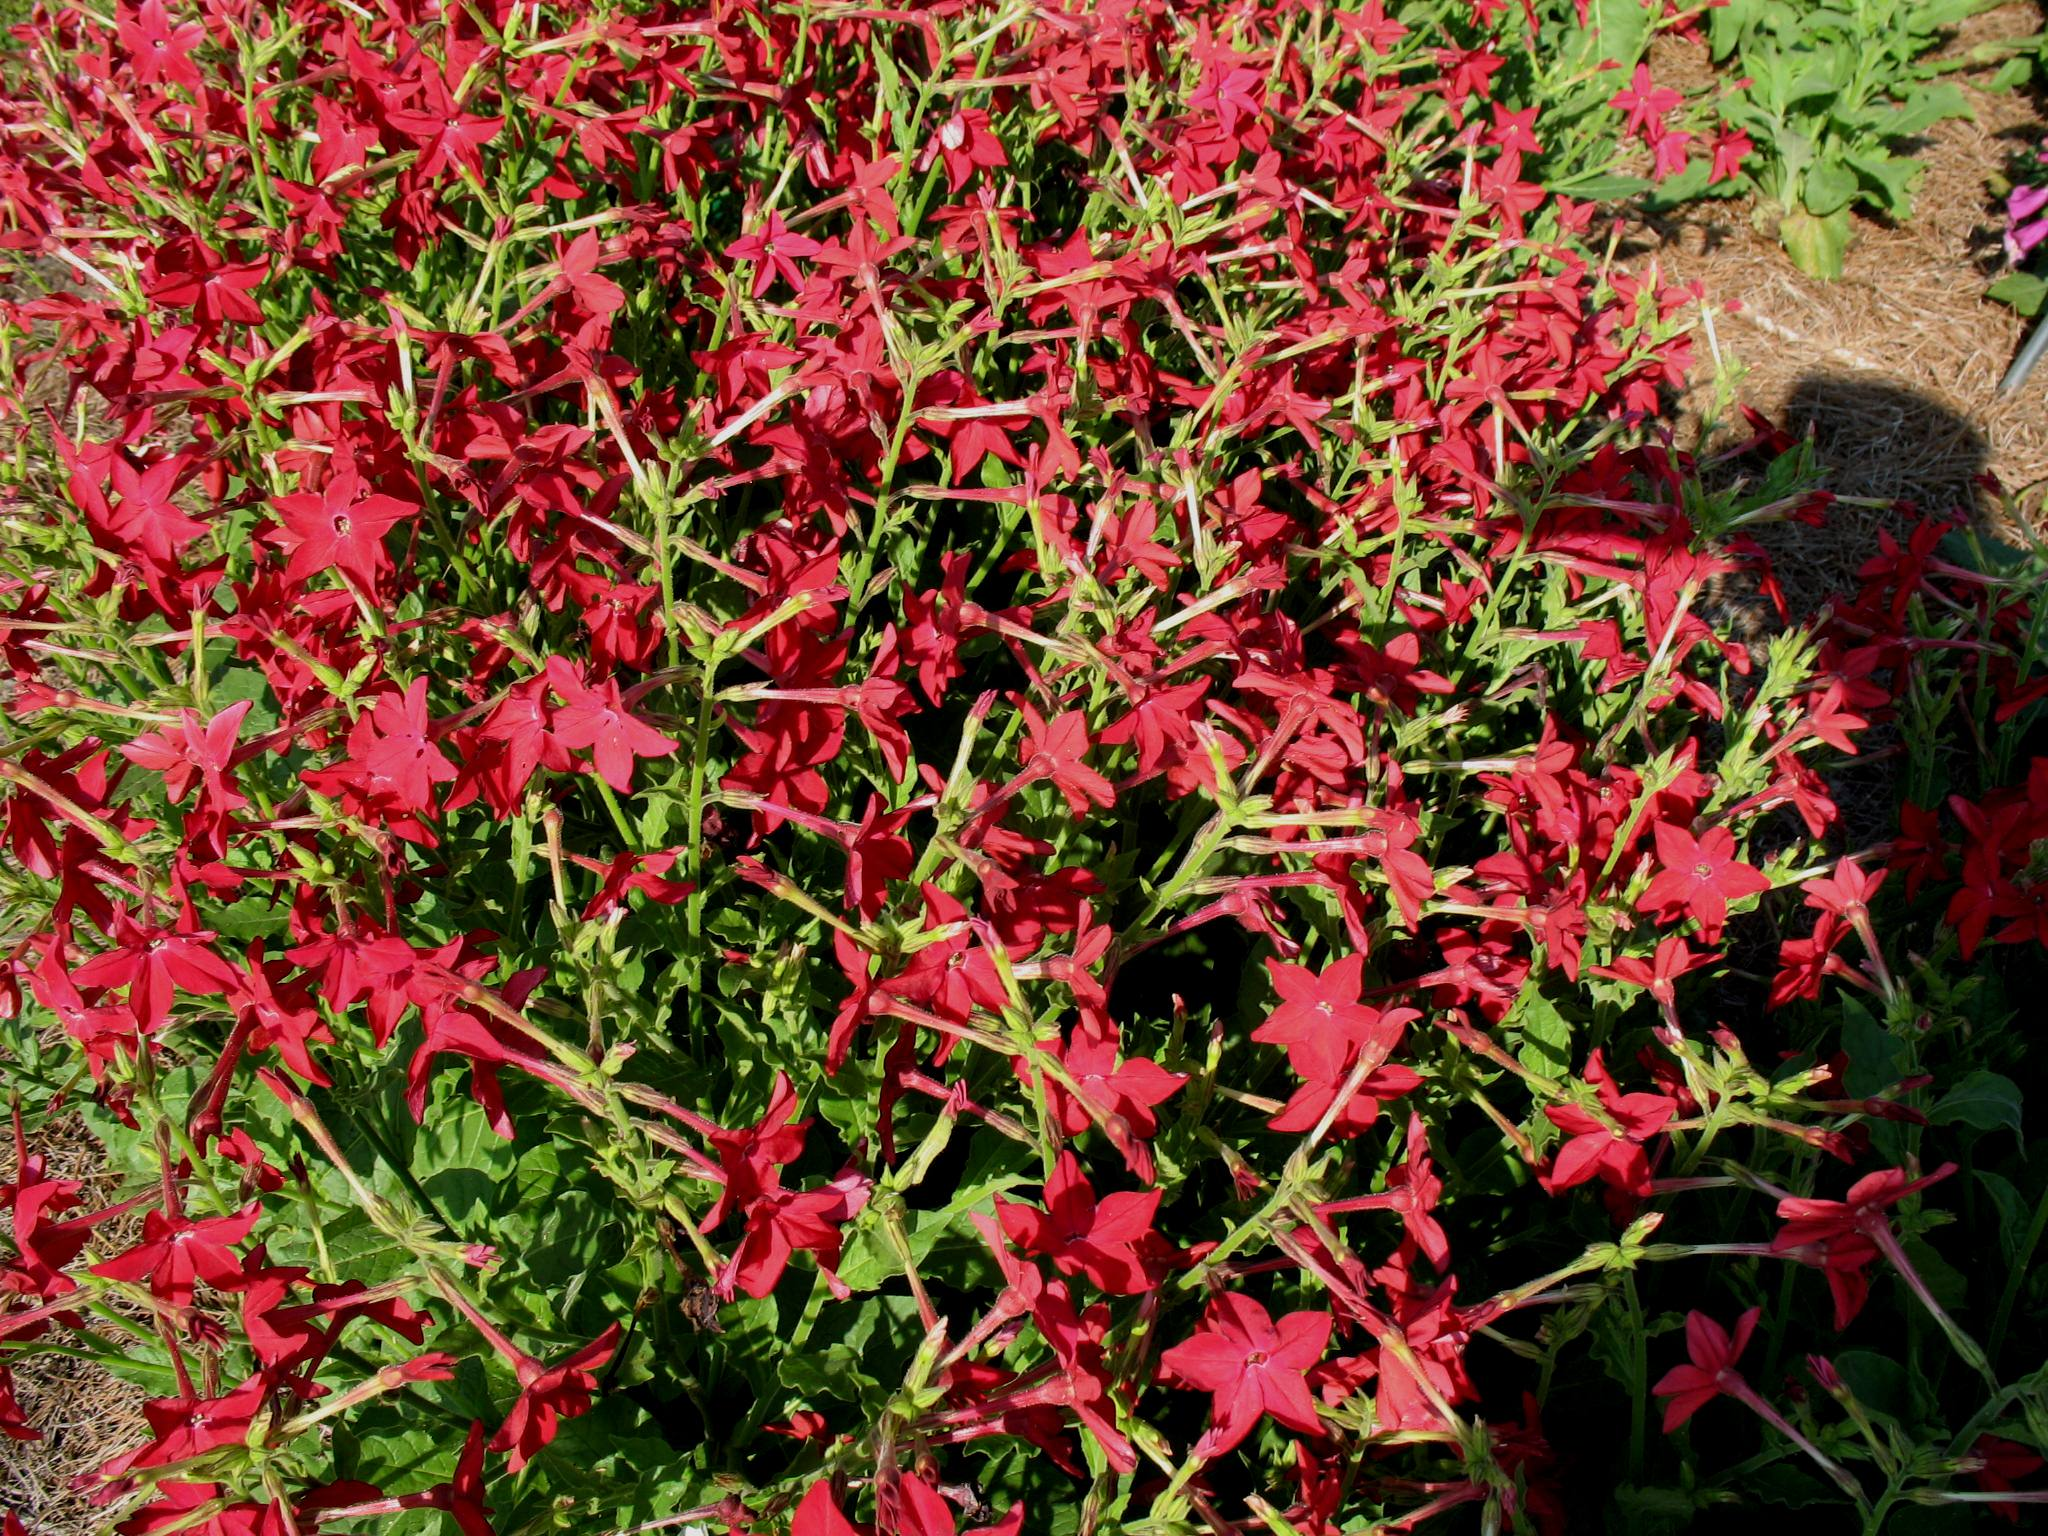 Nicotiana alata 'Nicki Red' / Nicotiana alata 'Nicki Red'